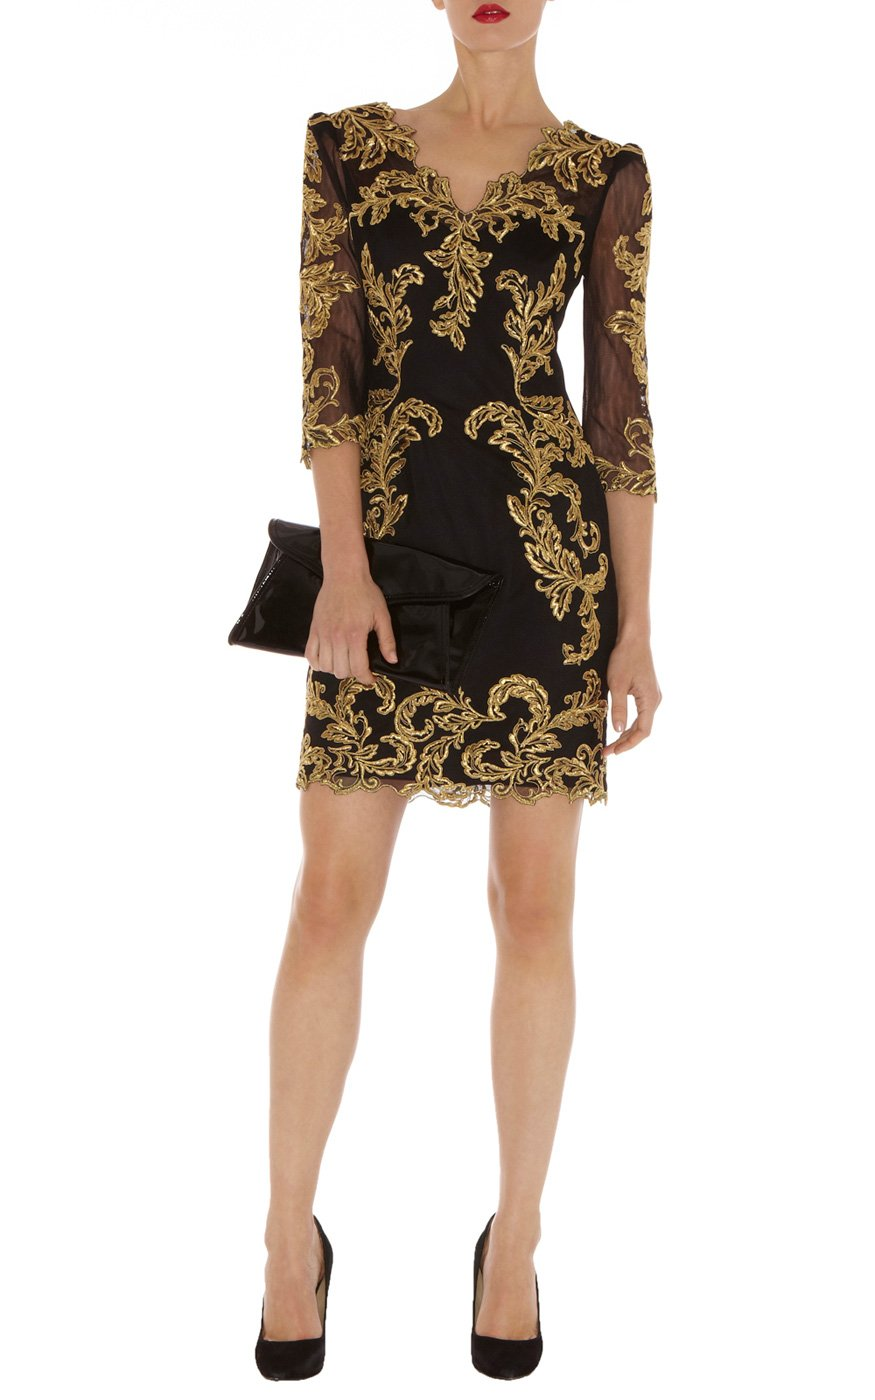 Luxury clothing for women